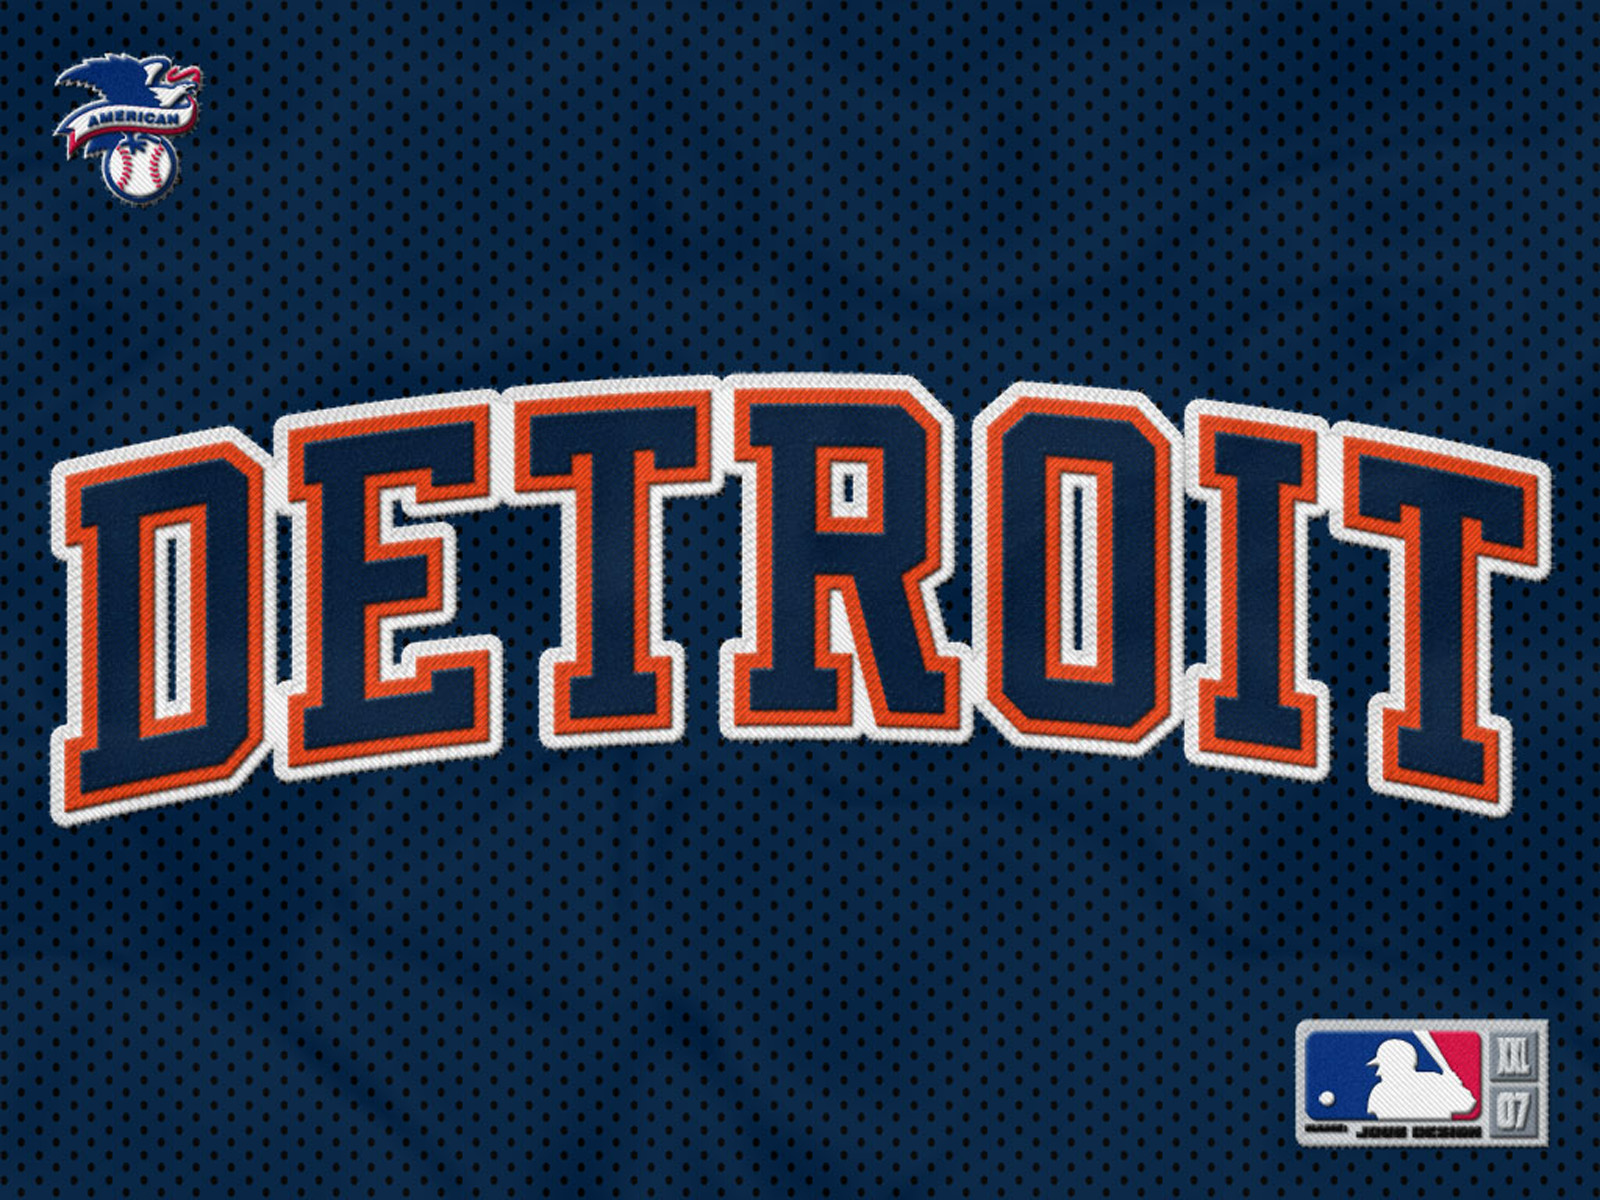 1600x1200 - Detroit Tigers Wallpapers 11